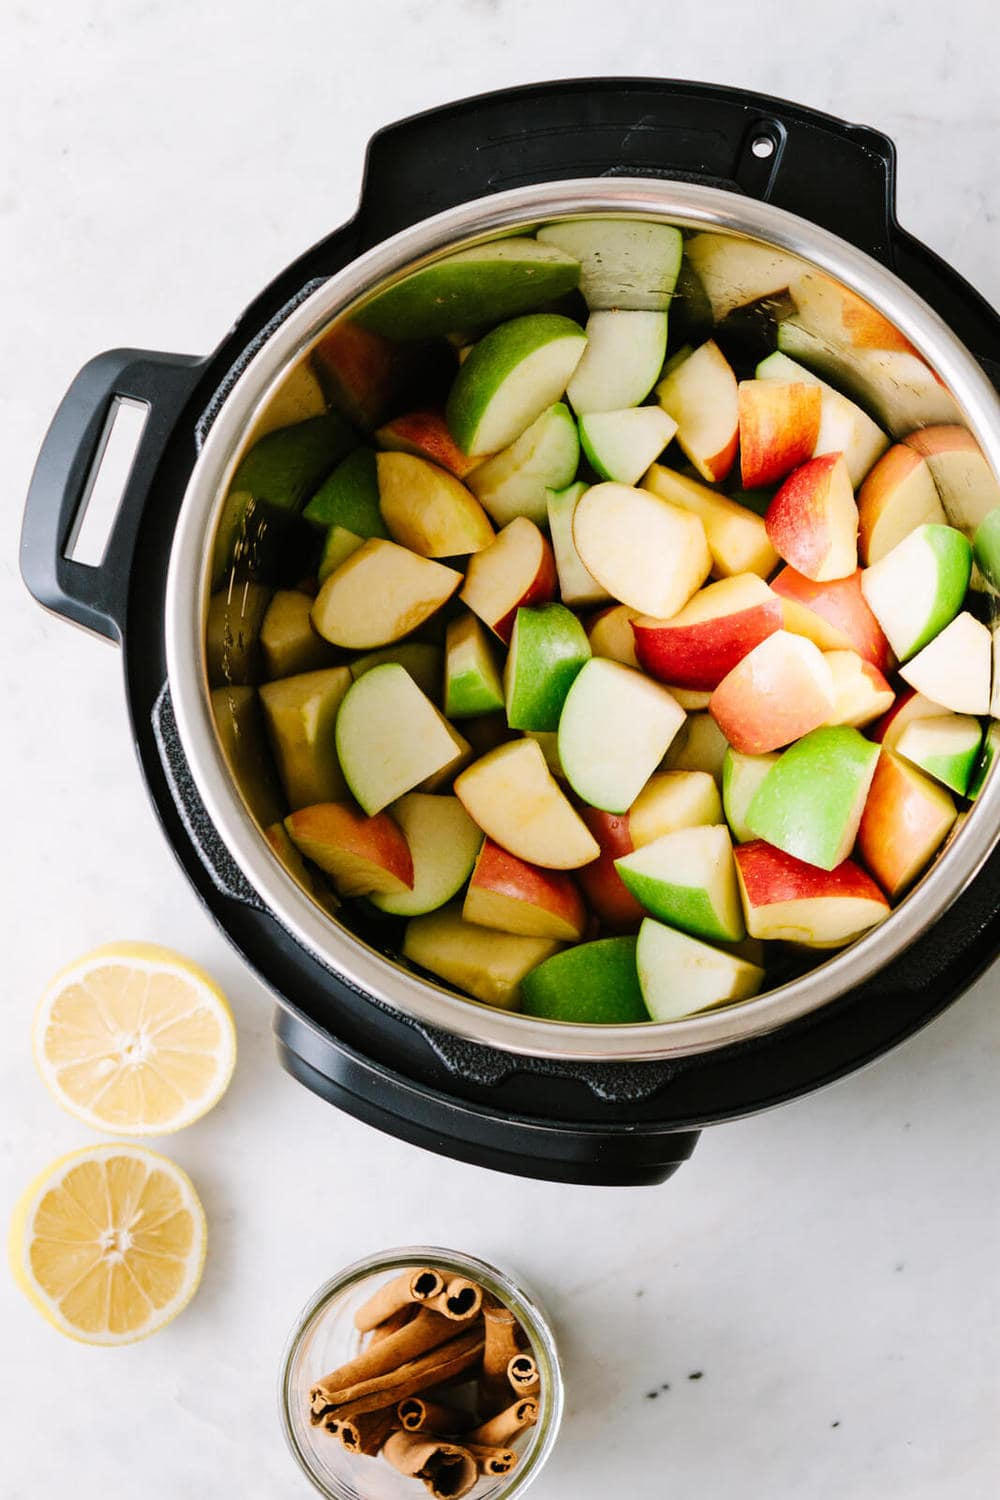 mix of granny smith, fuji and honey crisp apples with skins in an instant pot